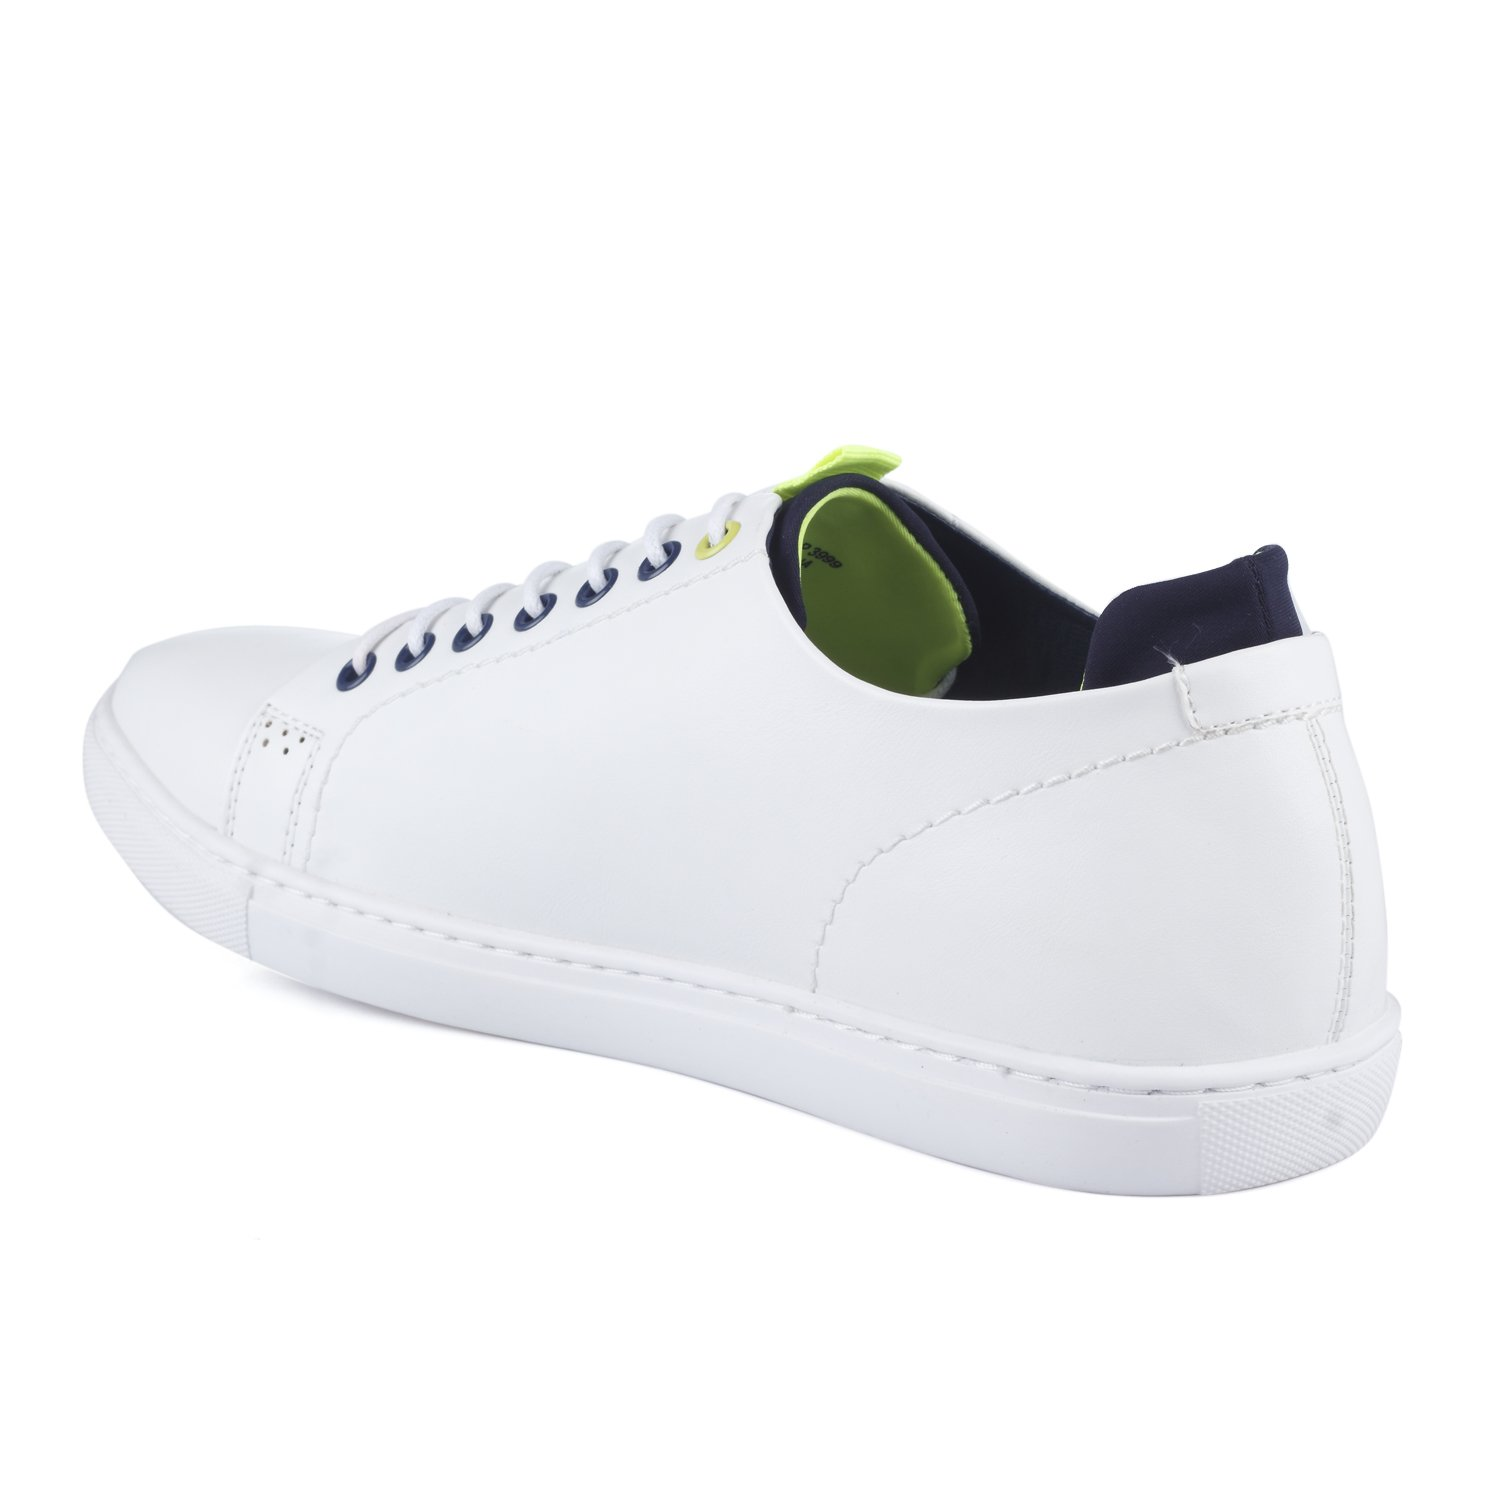 Buy Mufti White Sneakers at Amazon.in